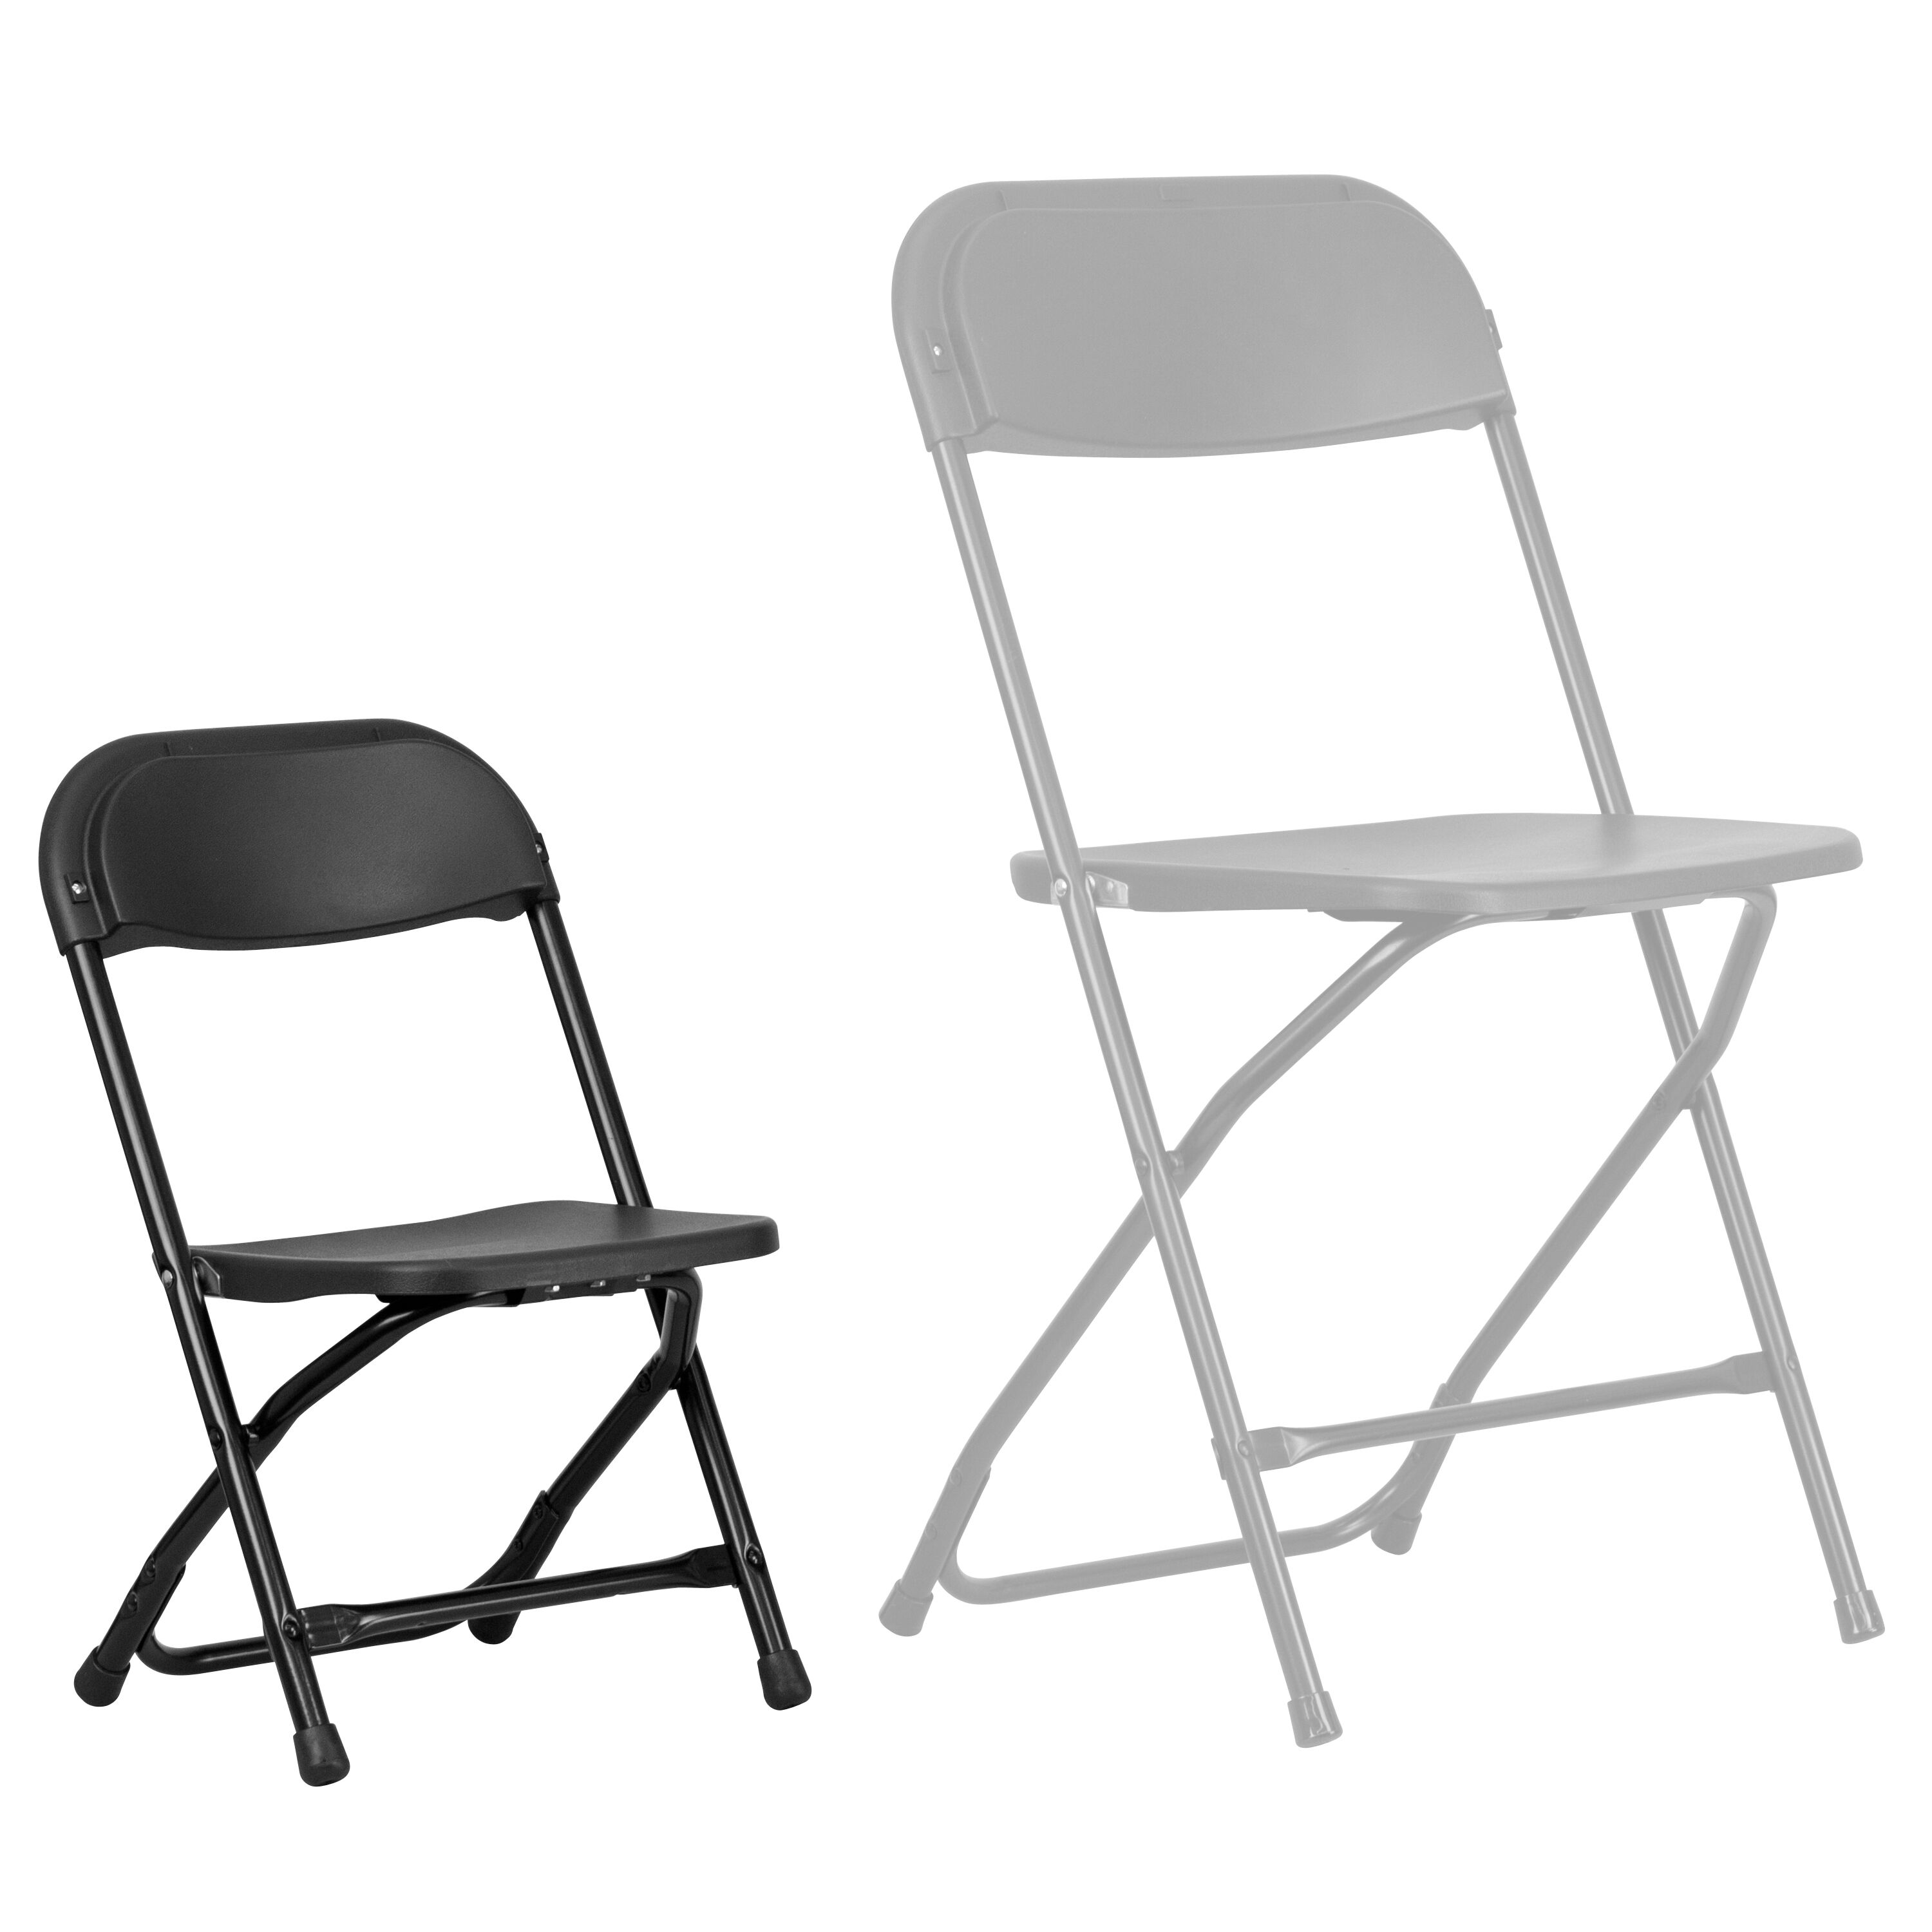 plastic kid chairs sure fit dining chair covers nz kids black folding y bk gg foldingchairs4less